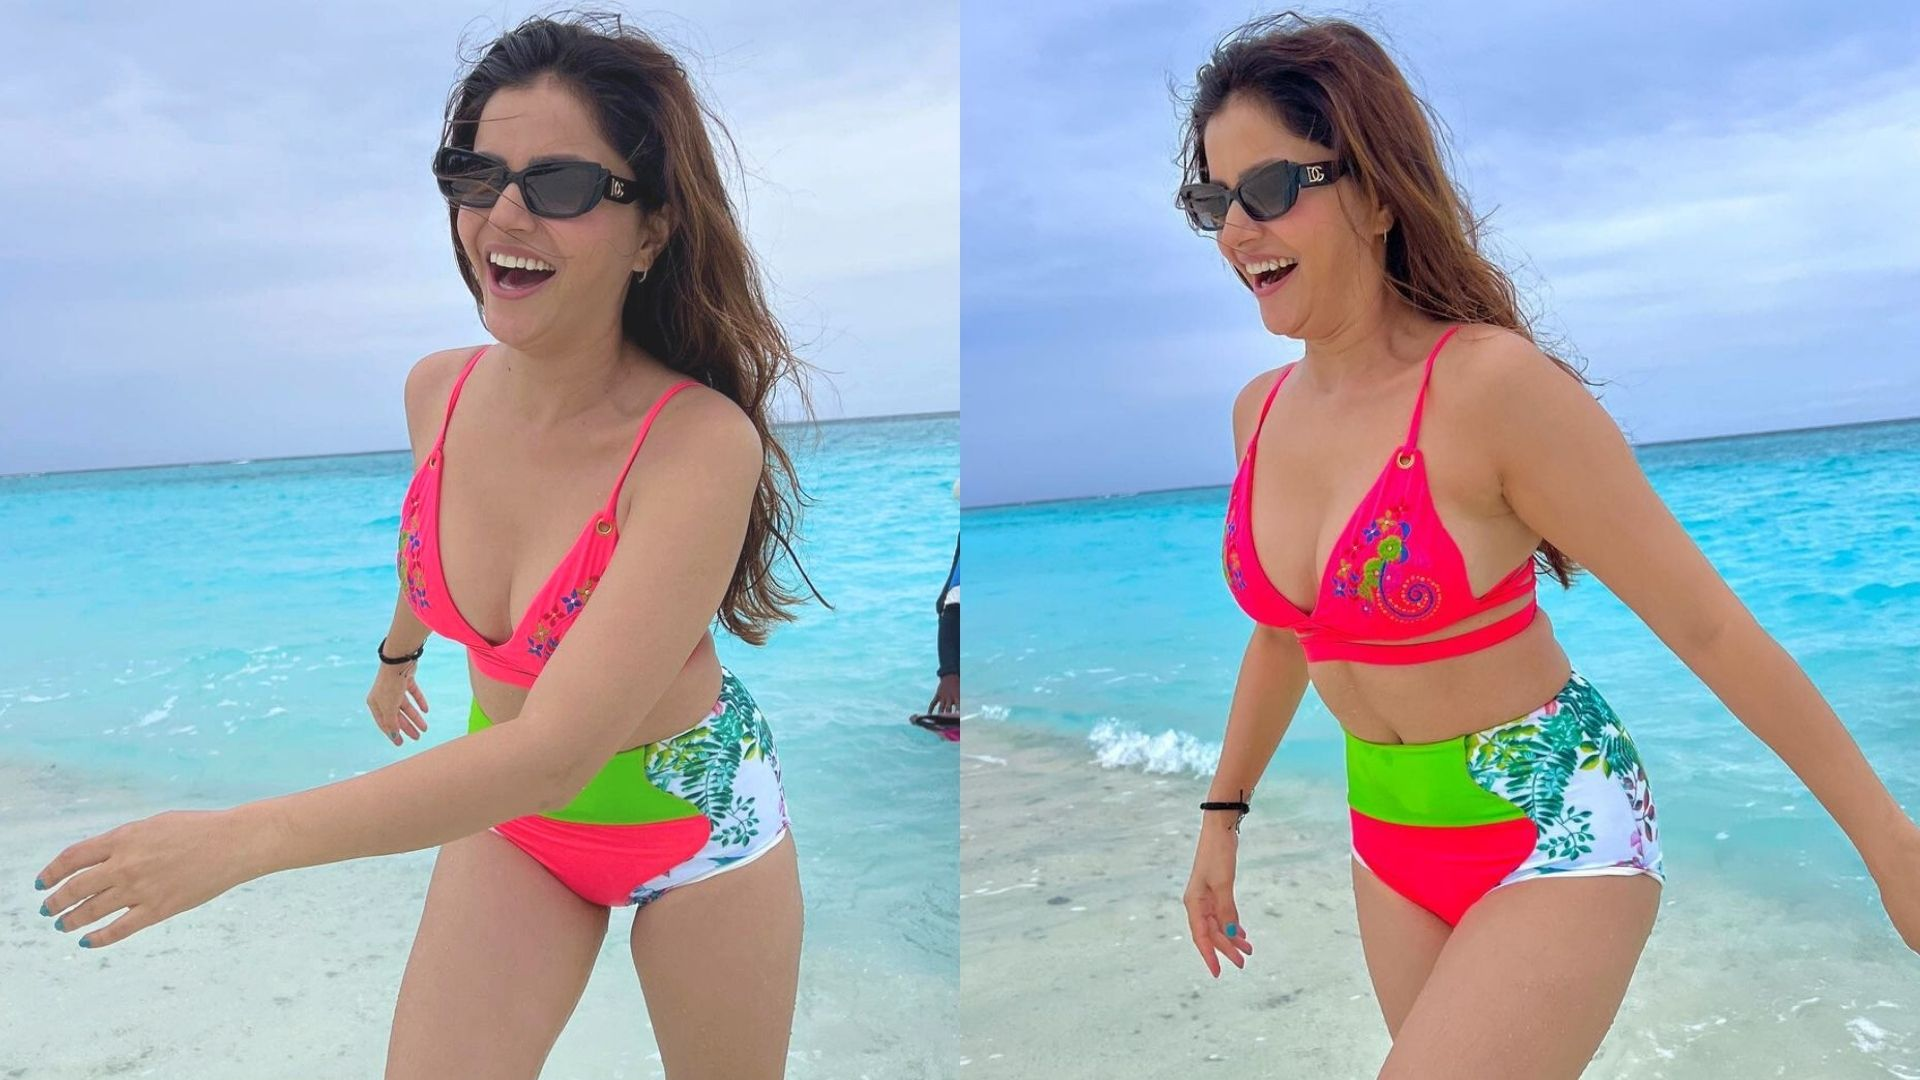 Rubina Dilaik Jumps Out Of Joy As She Enjoys Her Vaccation In Maldives; Actress Stuns In Neon Pink Bikini – PICS Inside